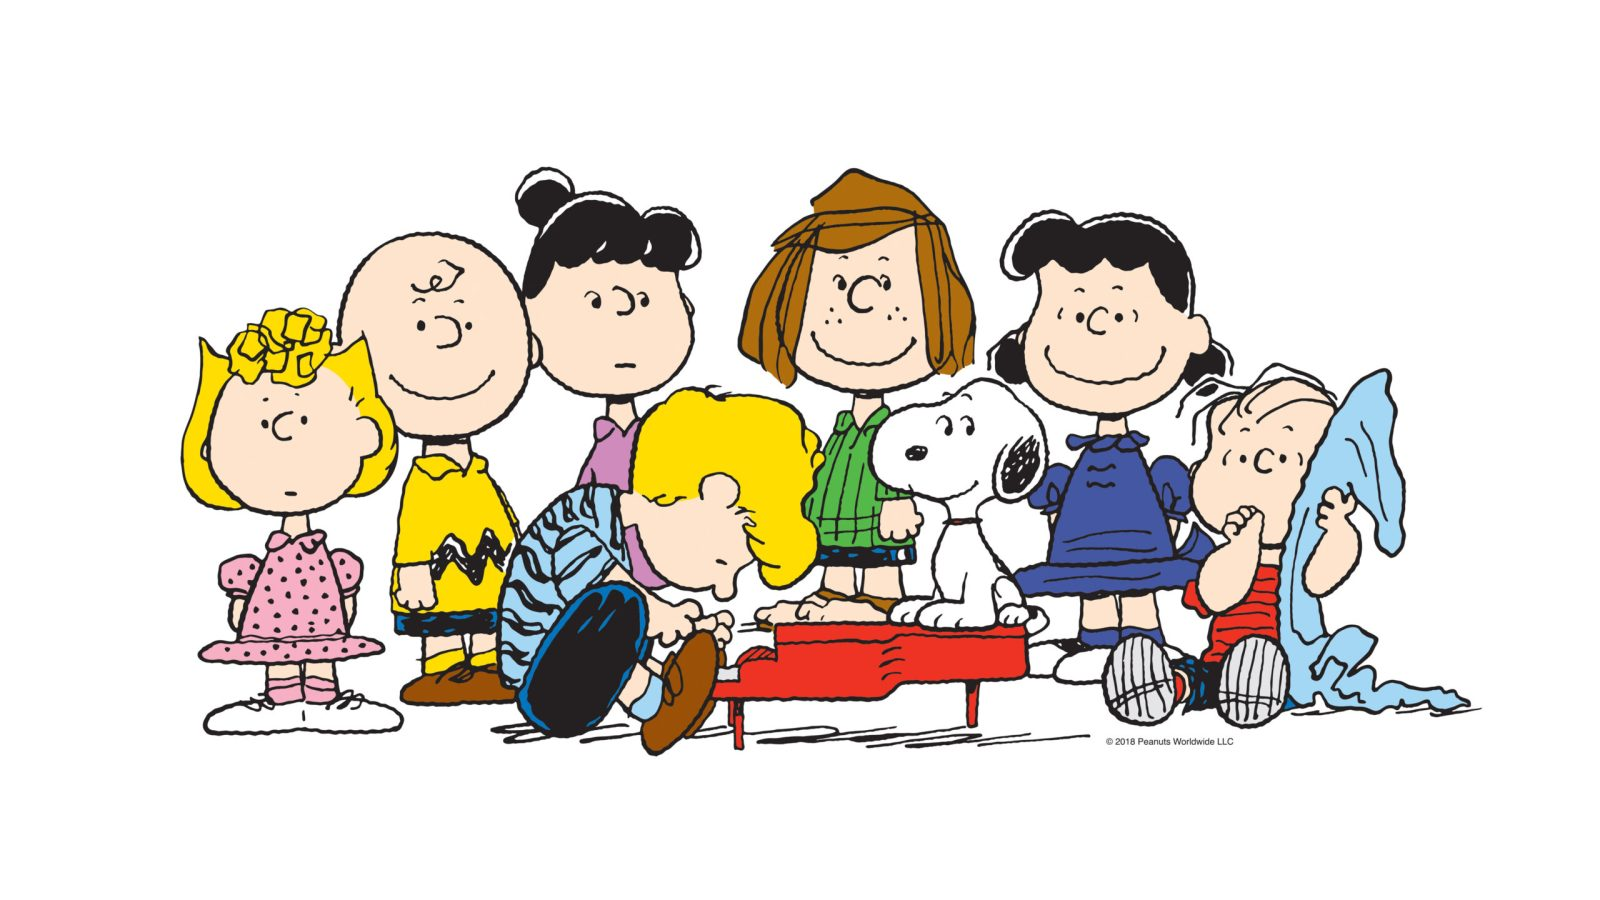 Apple Makes 'Peanuts' Deal; DHX Media To Produce New Series, Specials & Shorts With Classic Characters For Streamer 1